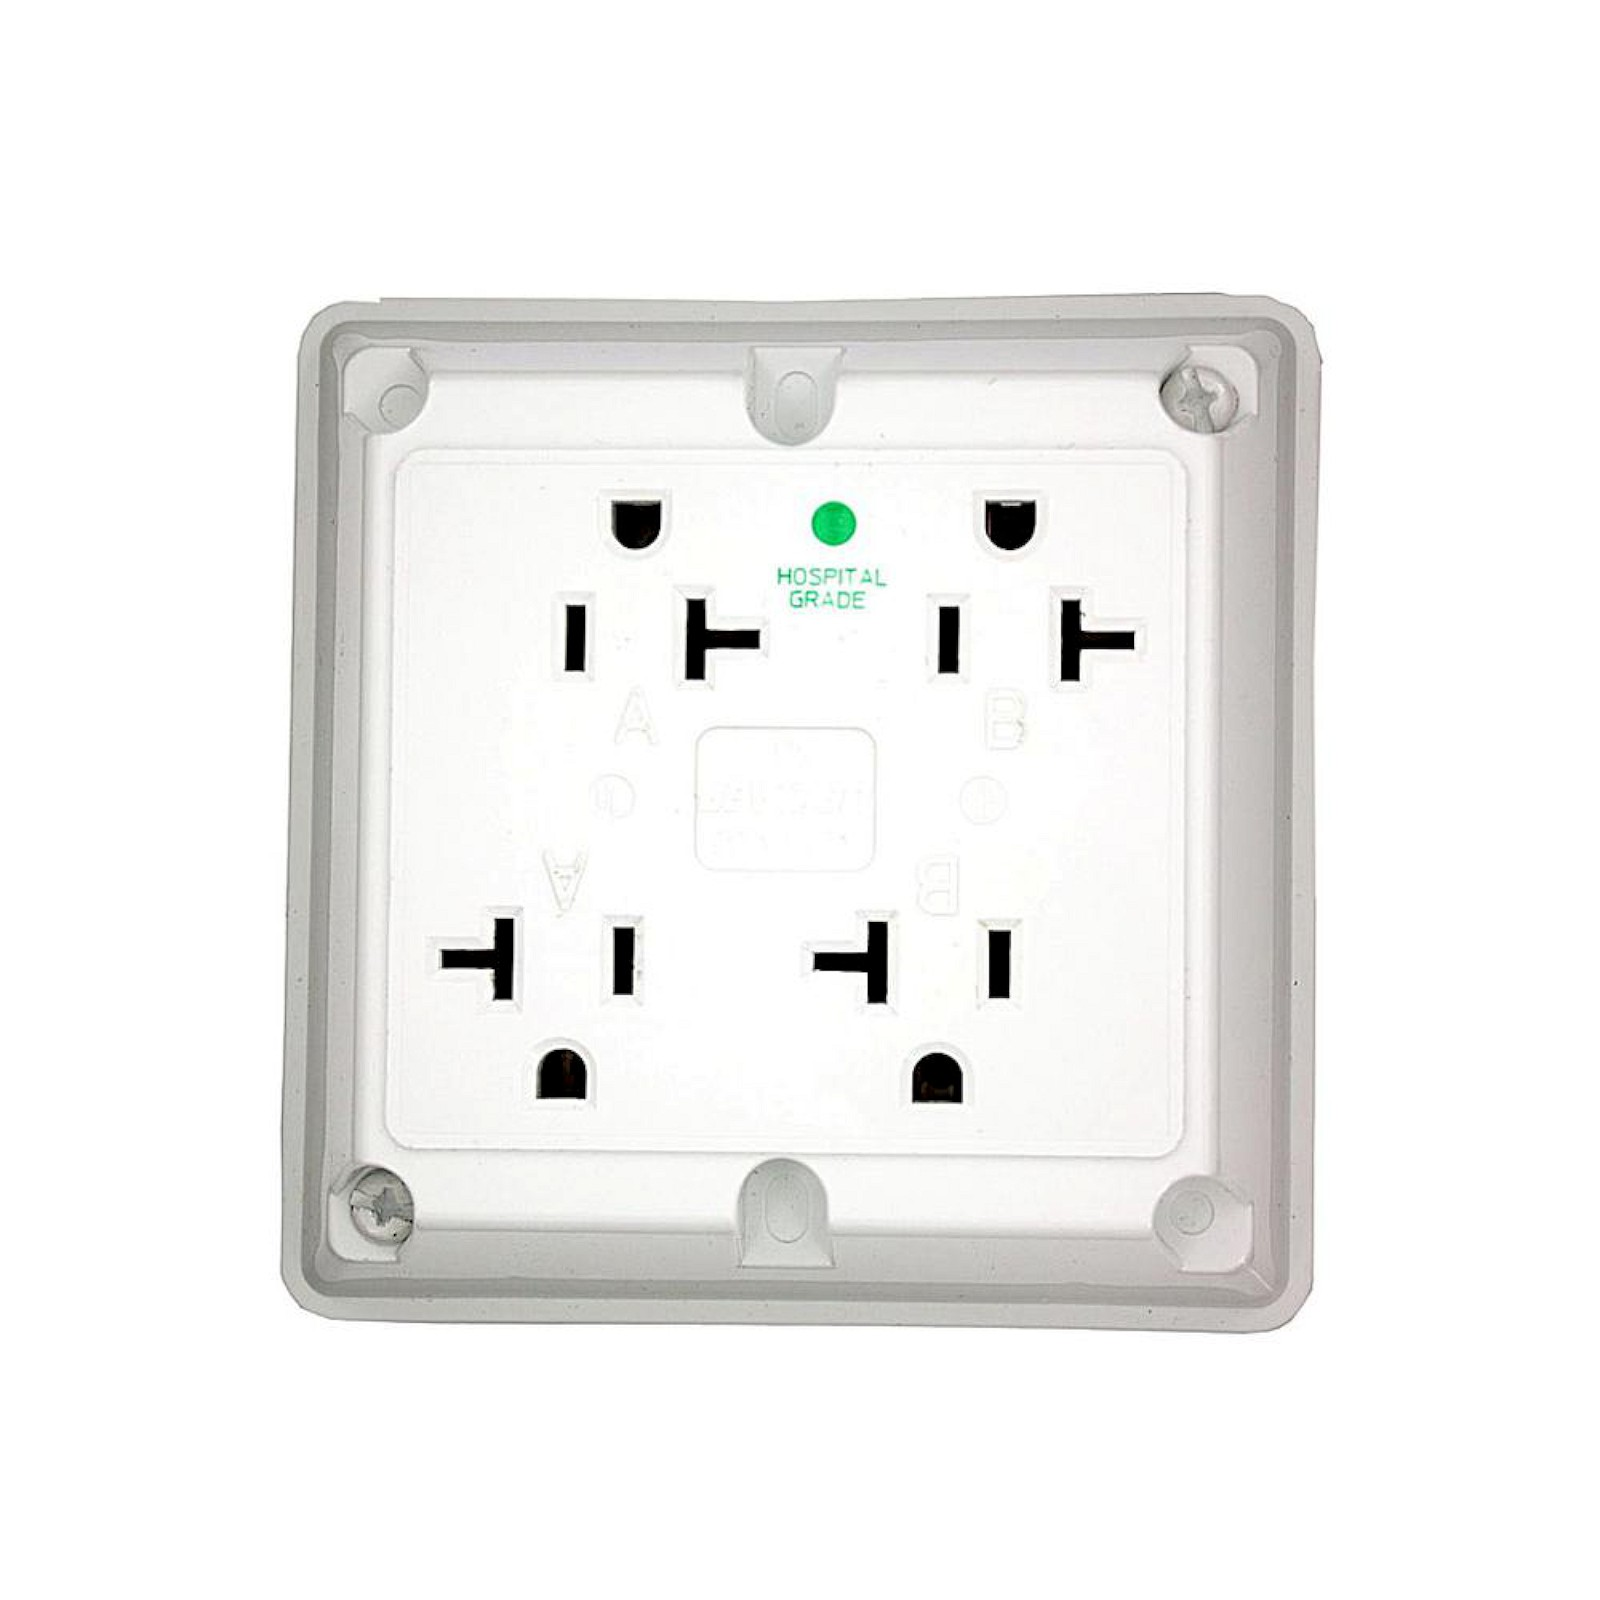 hight resolution of details about leviton 20 amp hospital grade extra heavy duty grounding 4 in 1 outlet white